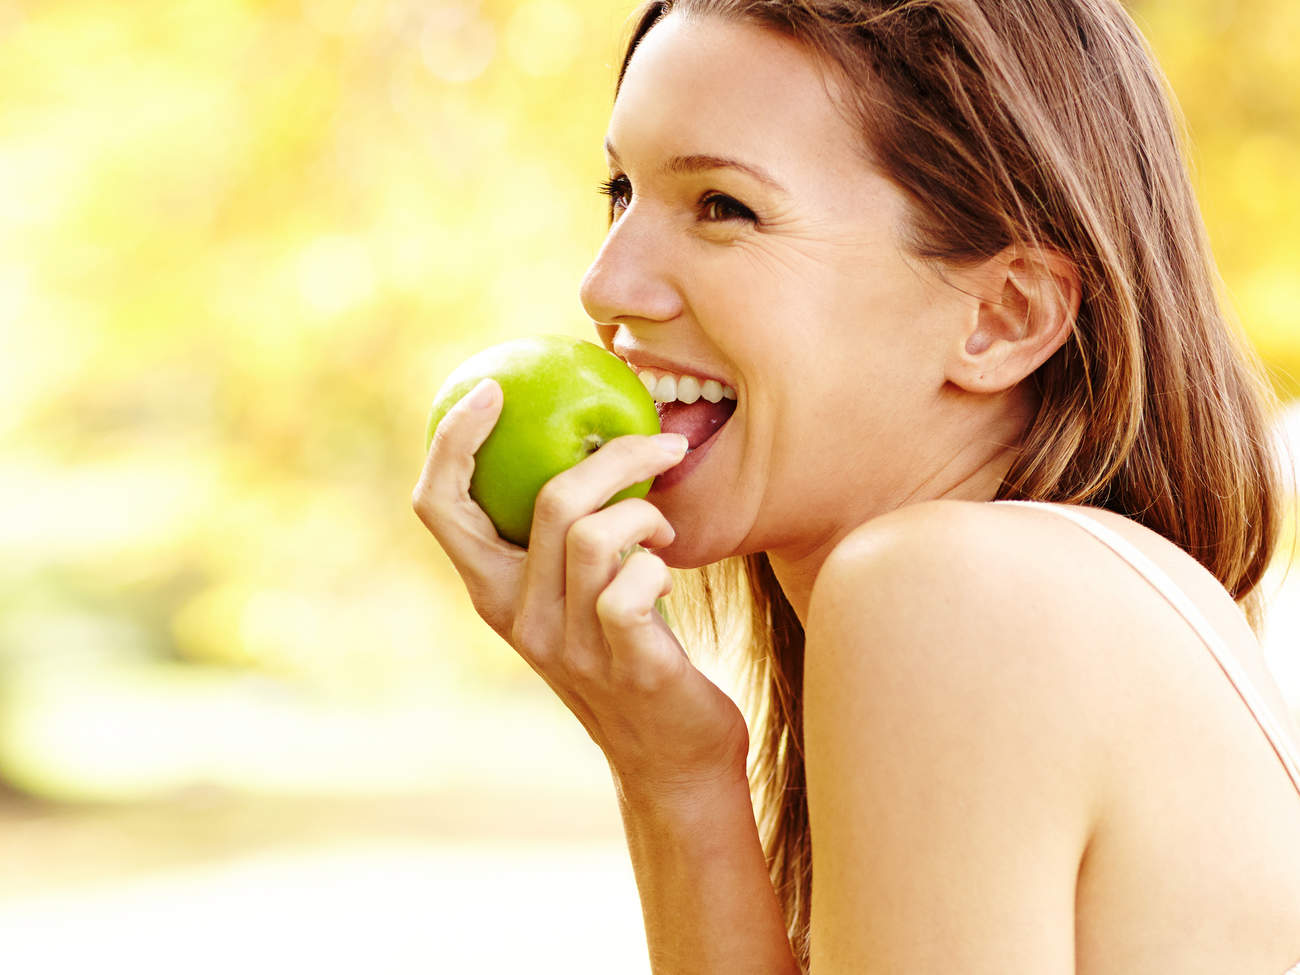 5-painless-tricks-to-outsmart-cravings-video